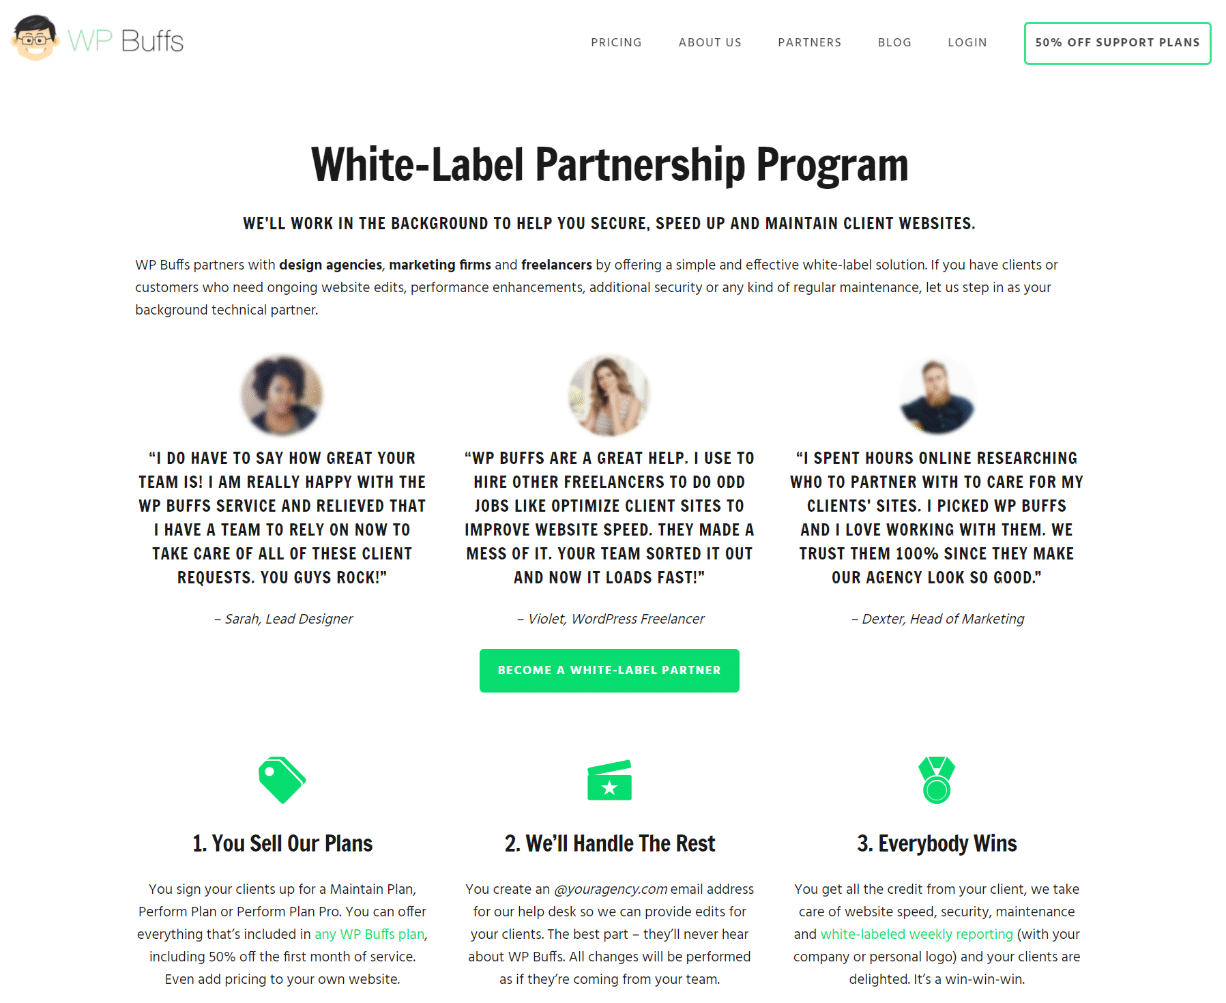 White-label partnership